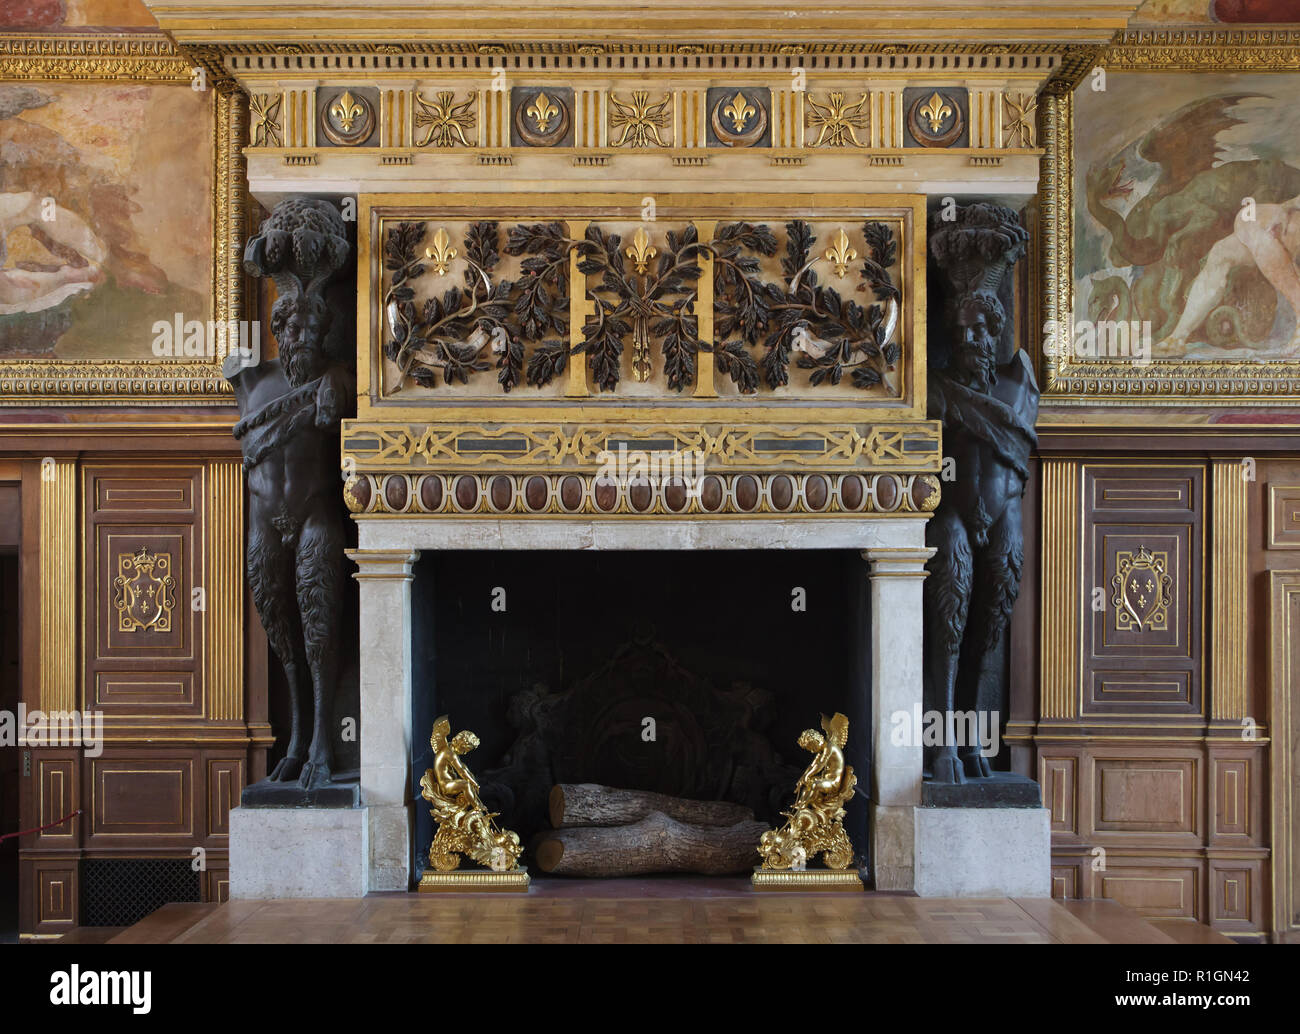 Fireplace designed by French Renaissance architect Philibert Delorme (Philibert de l'Orme) in the ballroom in the Palace of Fontainebleau (Château de Fontainebleau) near Paris, France. The room decoration started under King Francis I of France was completed by his son Henri II. Stock Photo